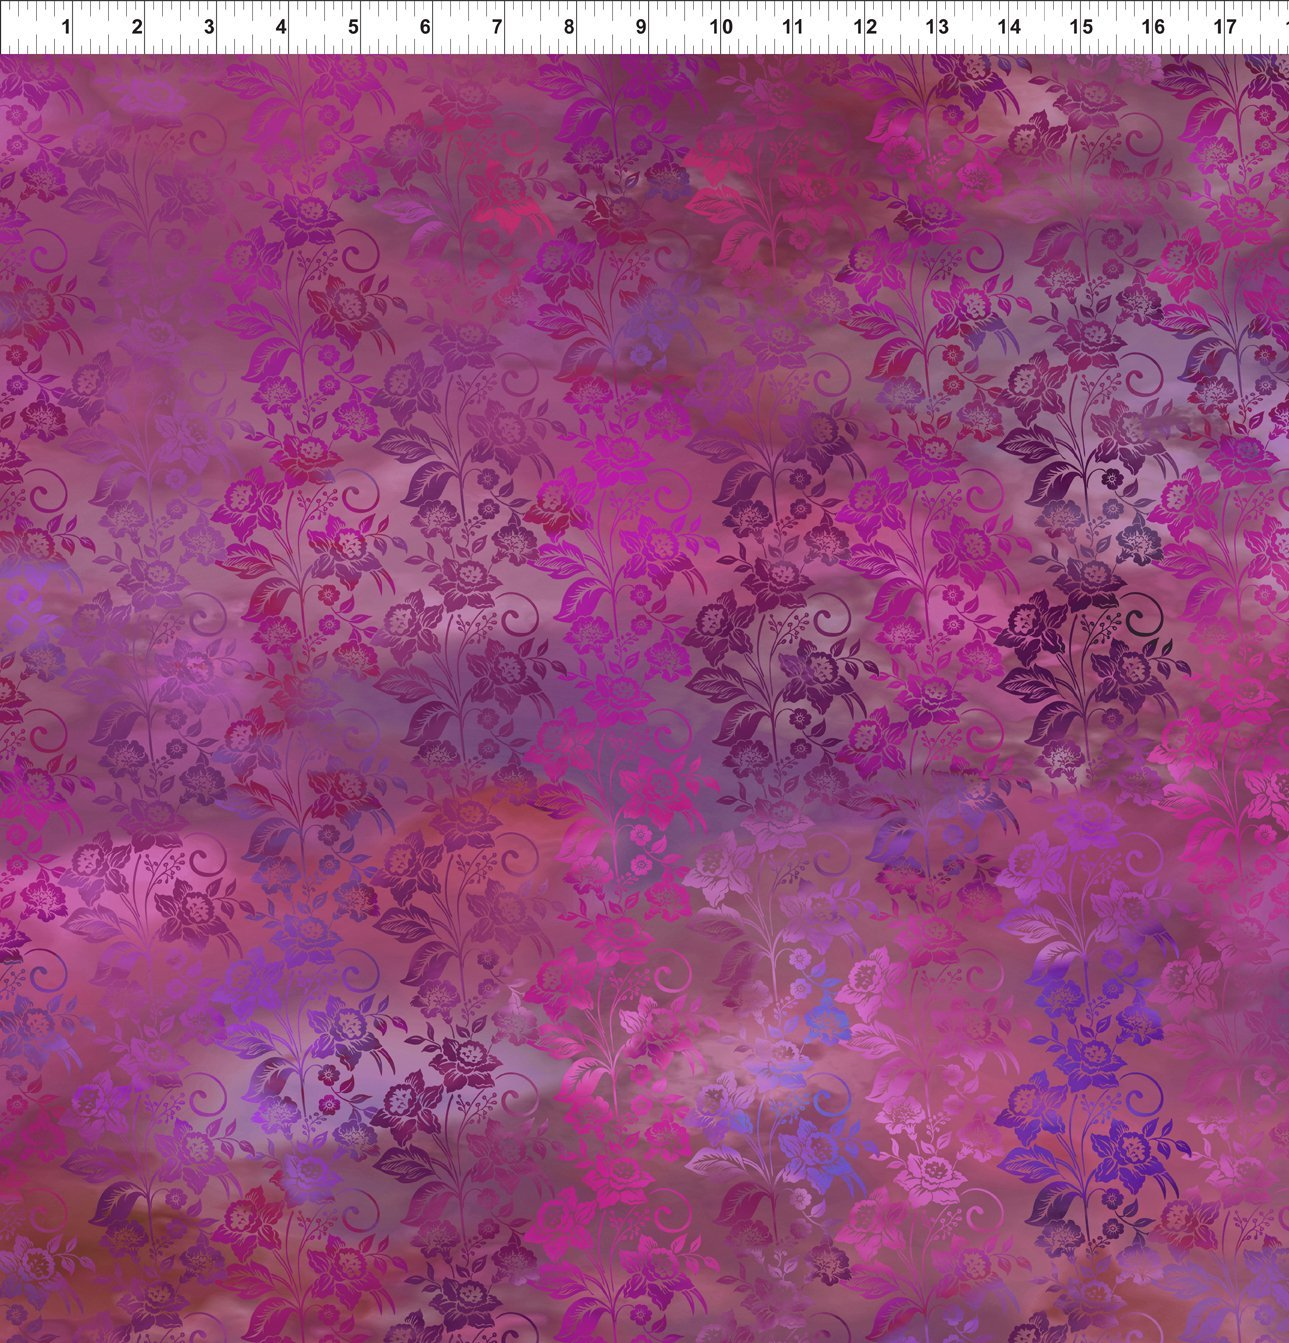 DIAPHANOUS 5ENC4 ENCHANTED VINES - MAGENTA by In The Beginning Fabrics